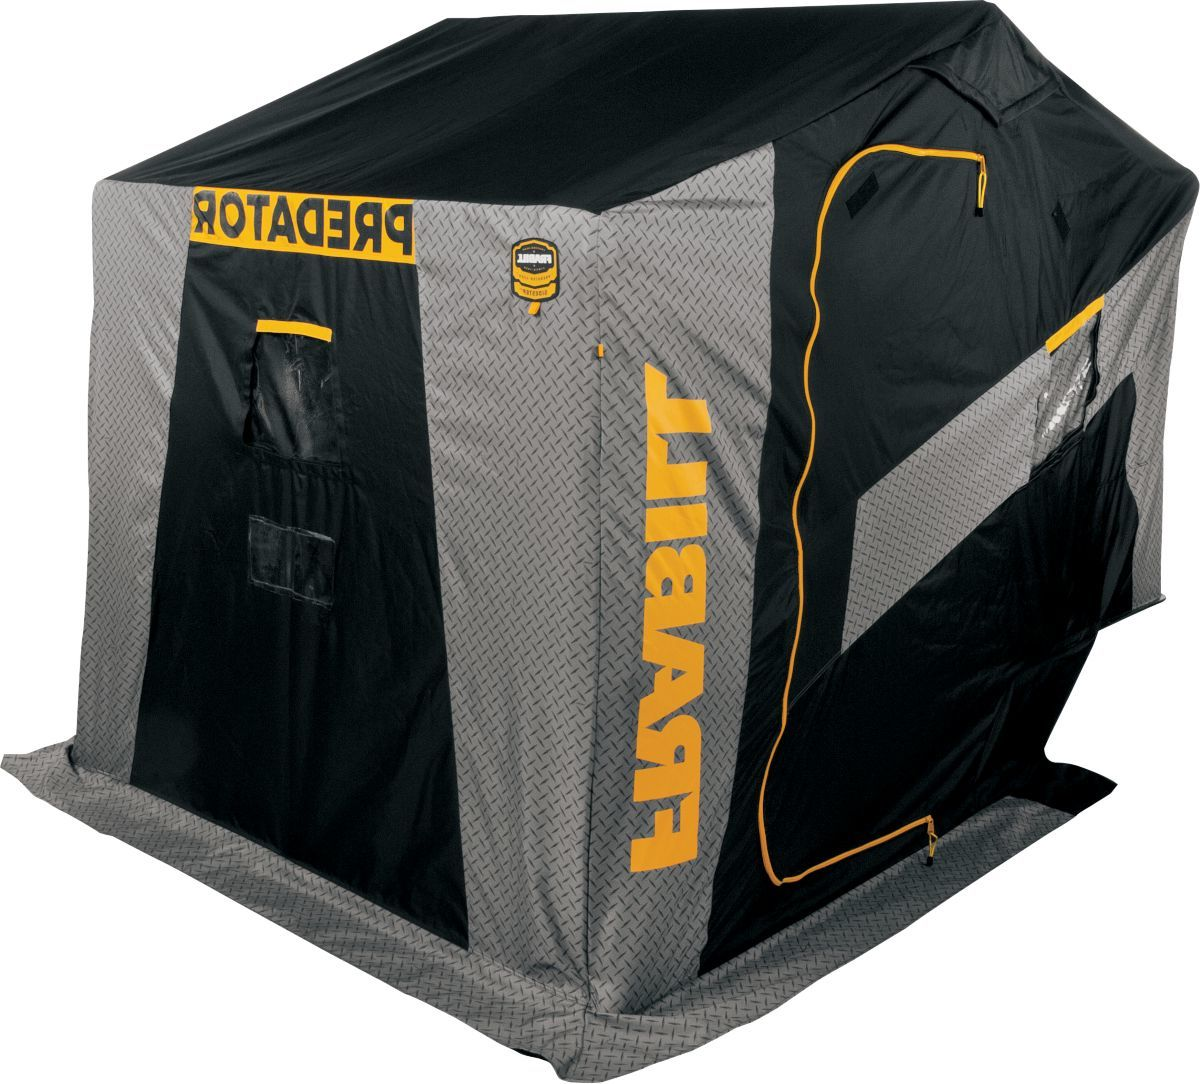 Frabill Insulated Predator 4255 Ice Shelter